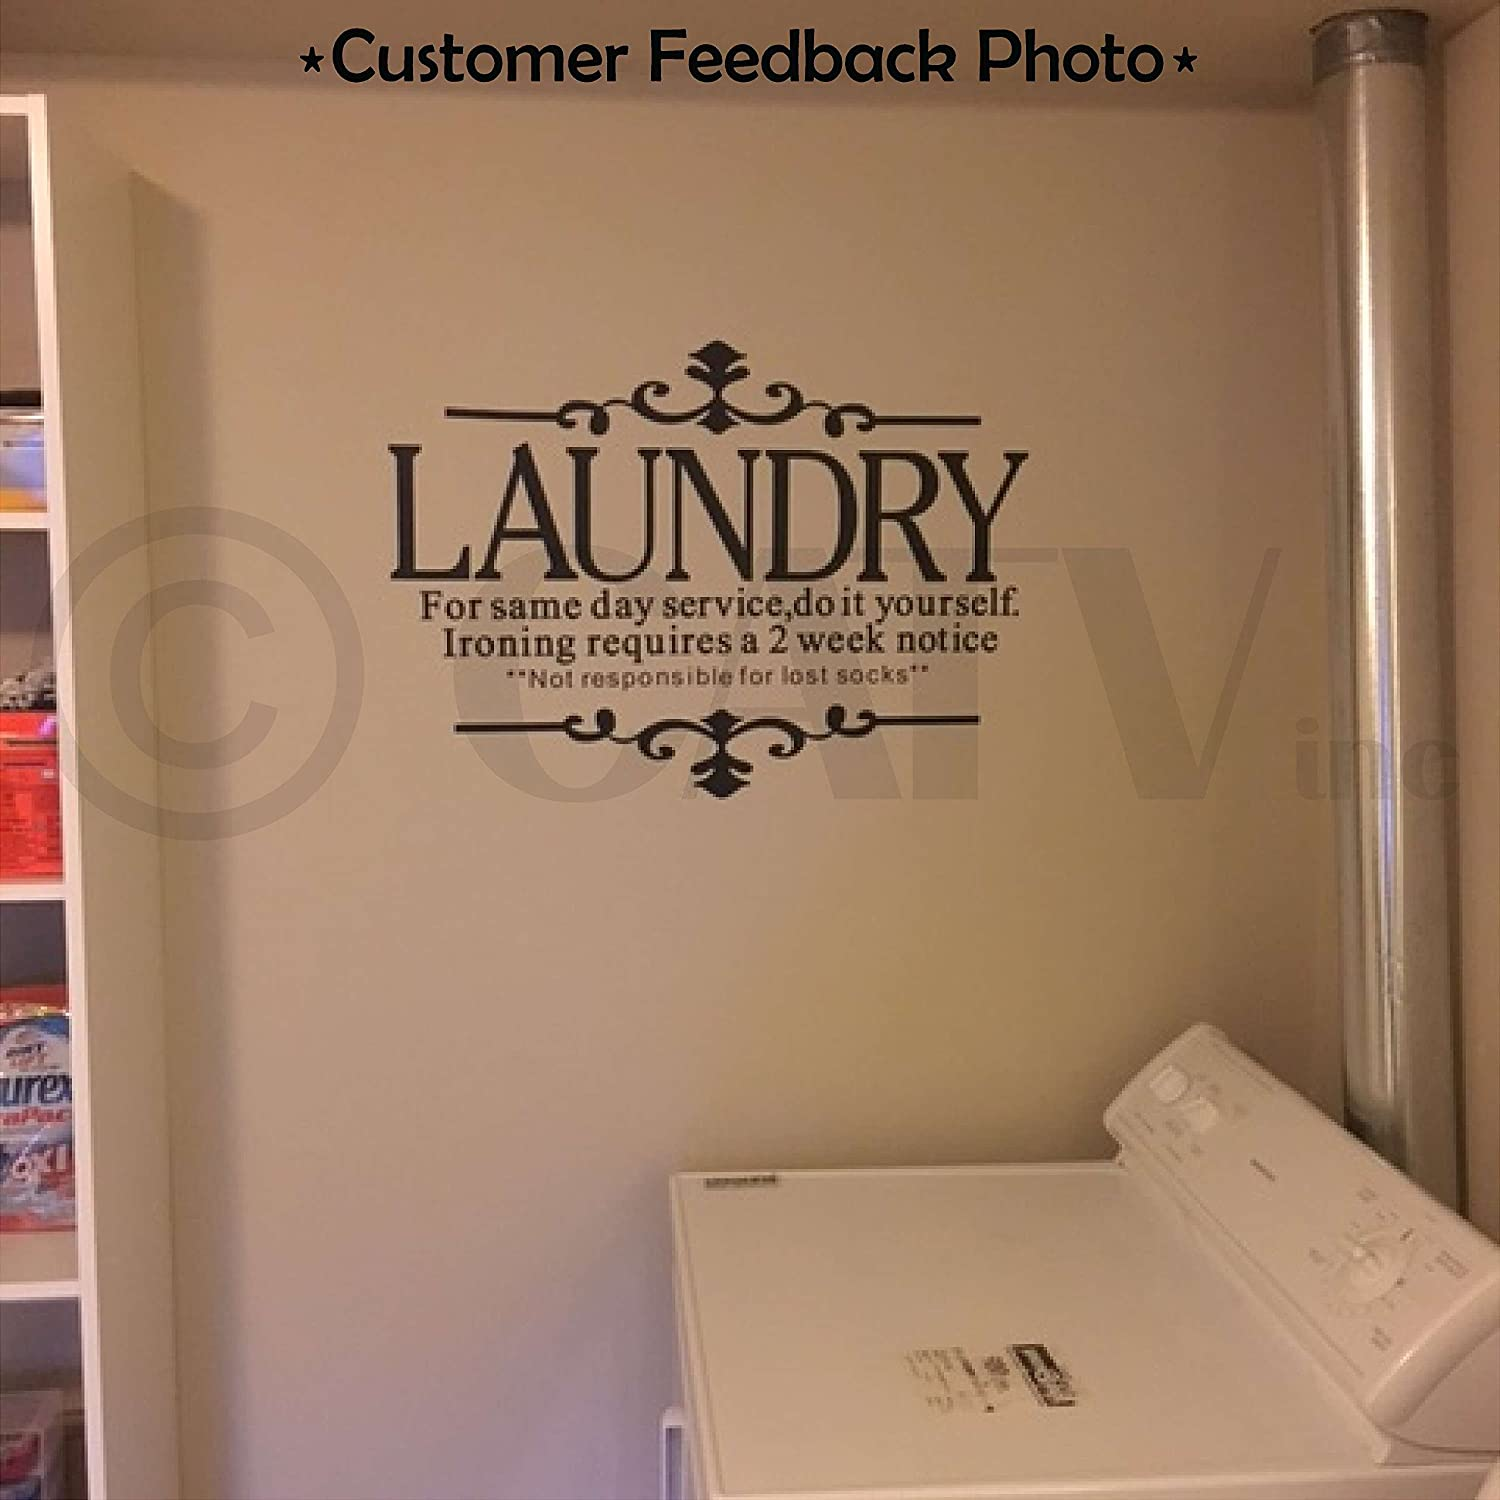 amazon com laundry for same day service do it yourself ironing amazon com laundry for same day service do it yourself ironing requires a 2 week notice vinyl lettering wall decal black 21